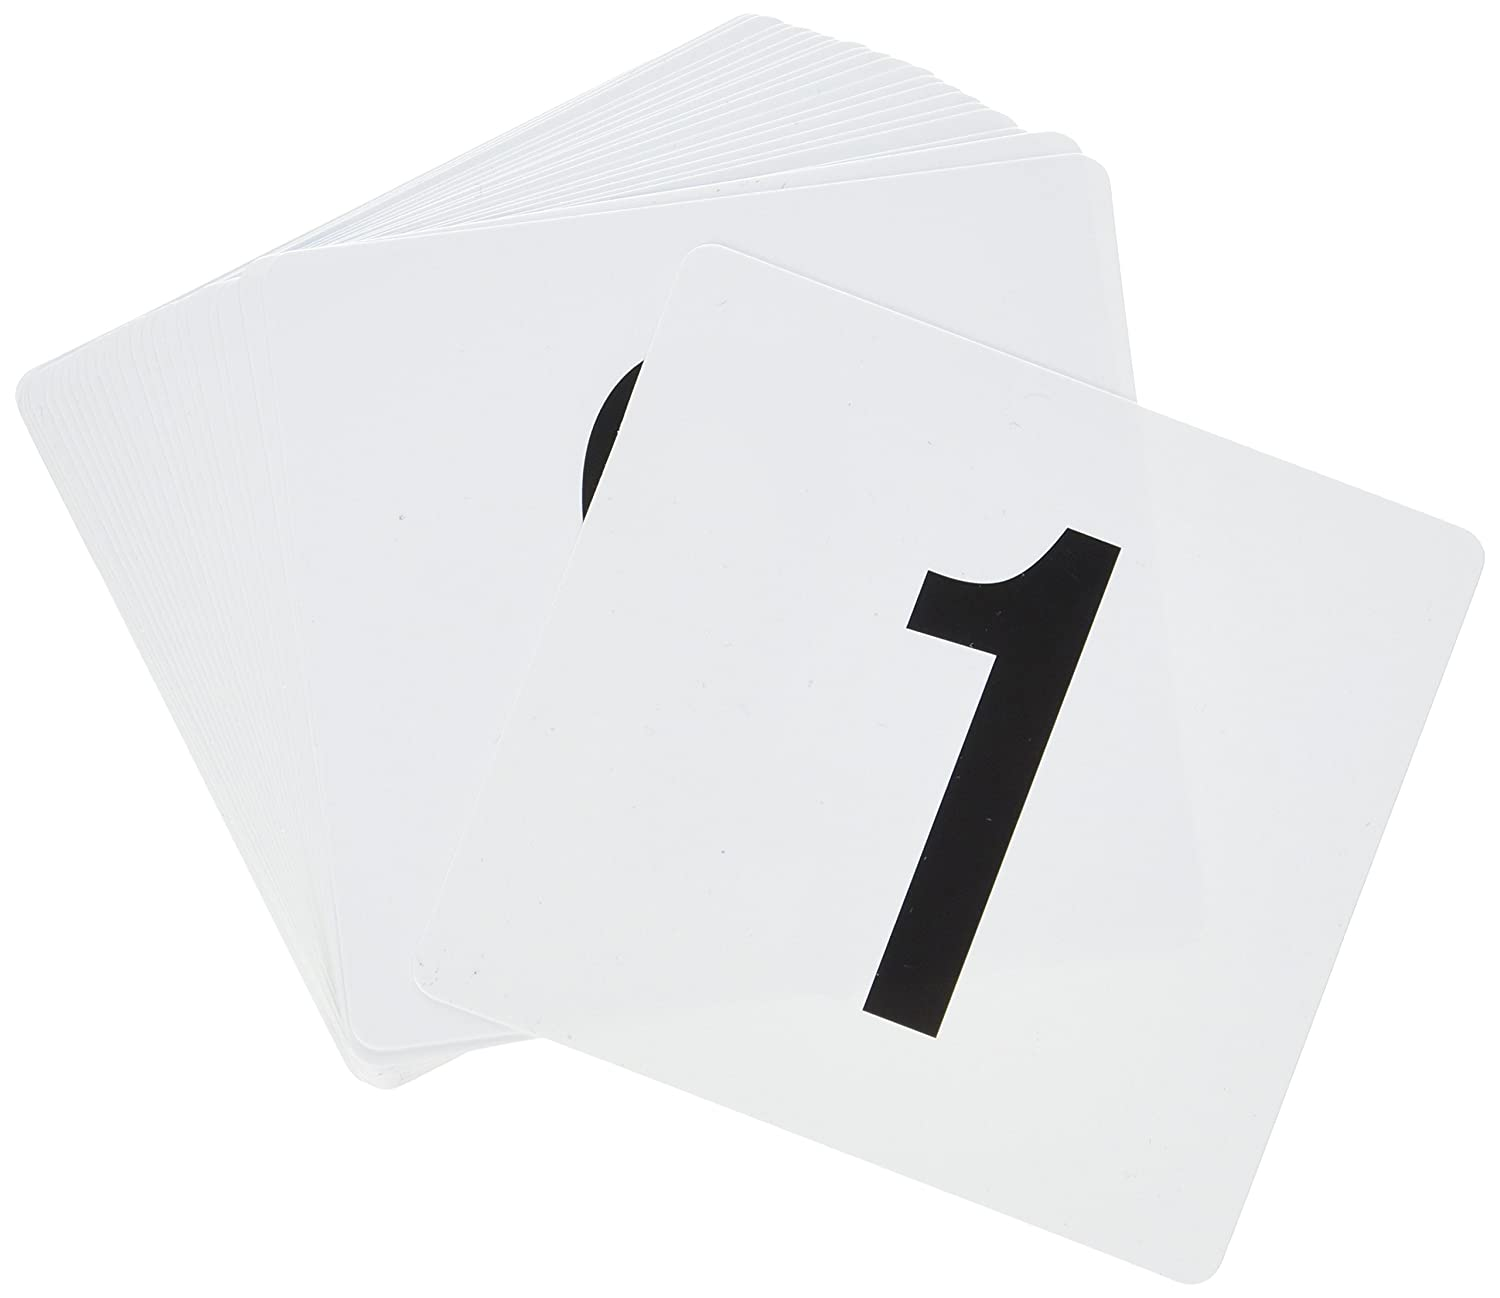 New Star Foodservice 23114 Double Side Plastic Table Numbers 1 to 25, 4 by 4-Inch, Black on White